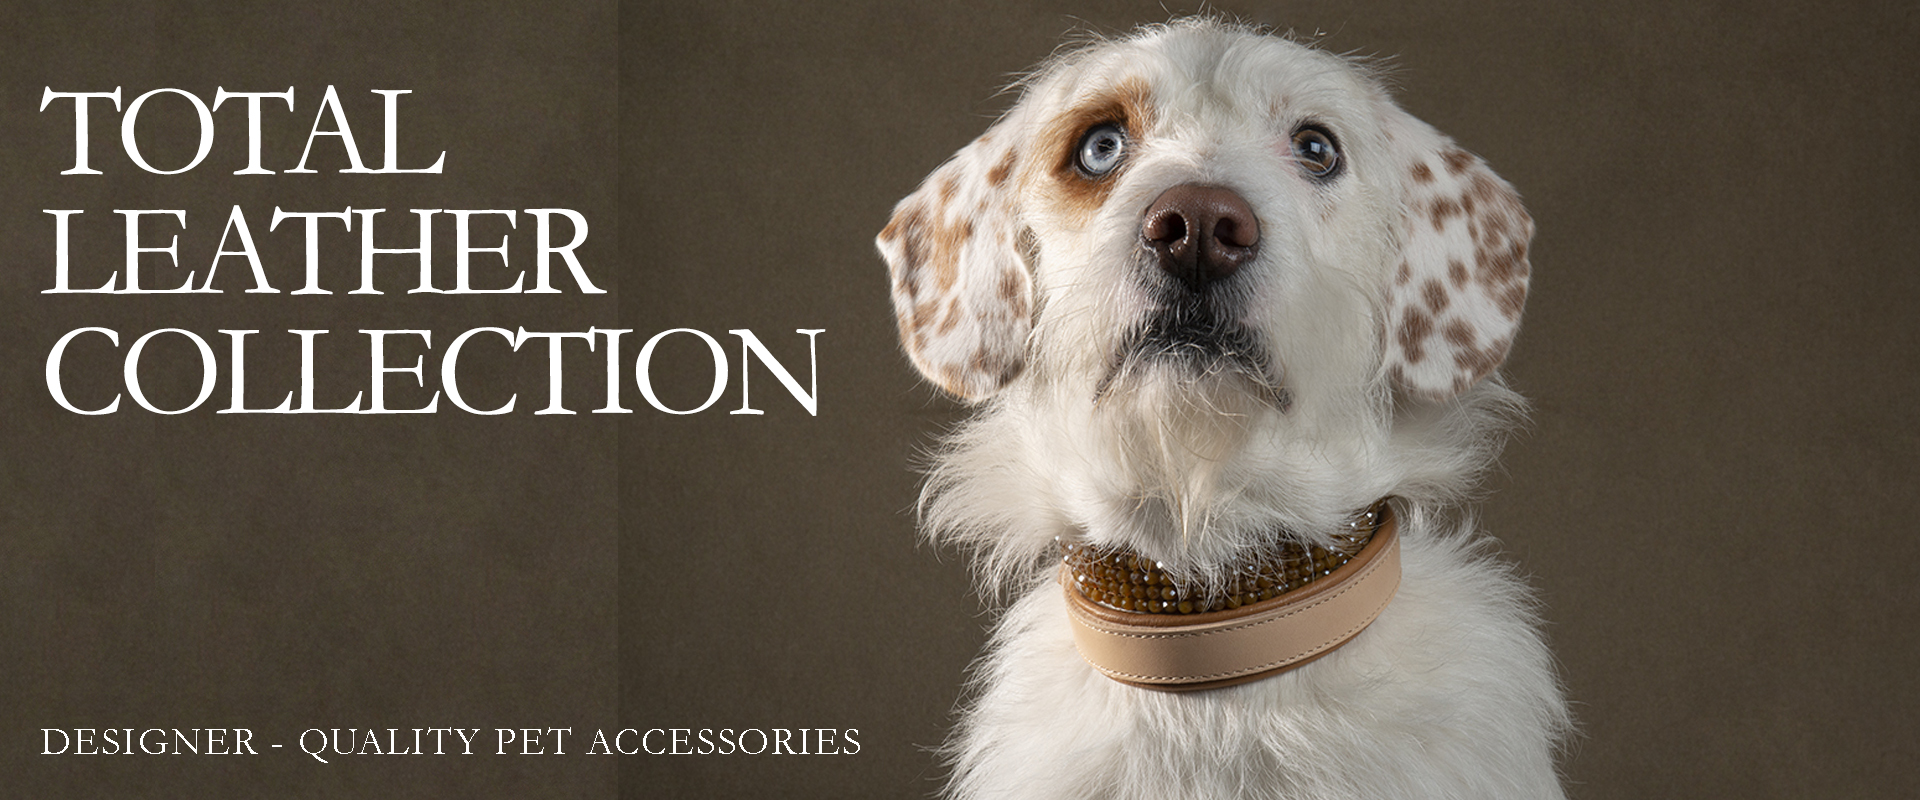 Total Leather Collection | Designer-quality pet accessories by zikos